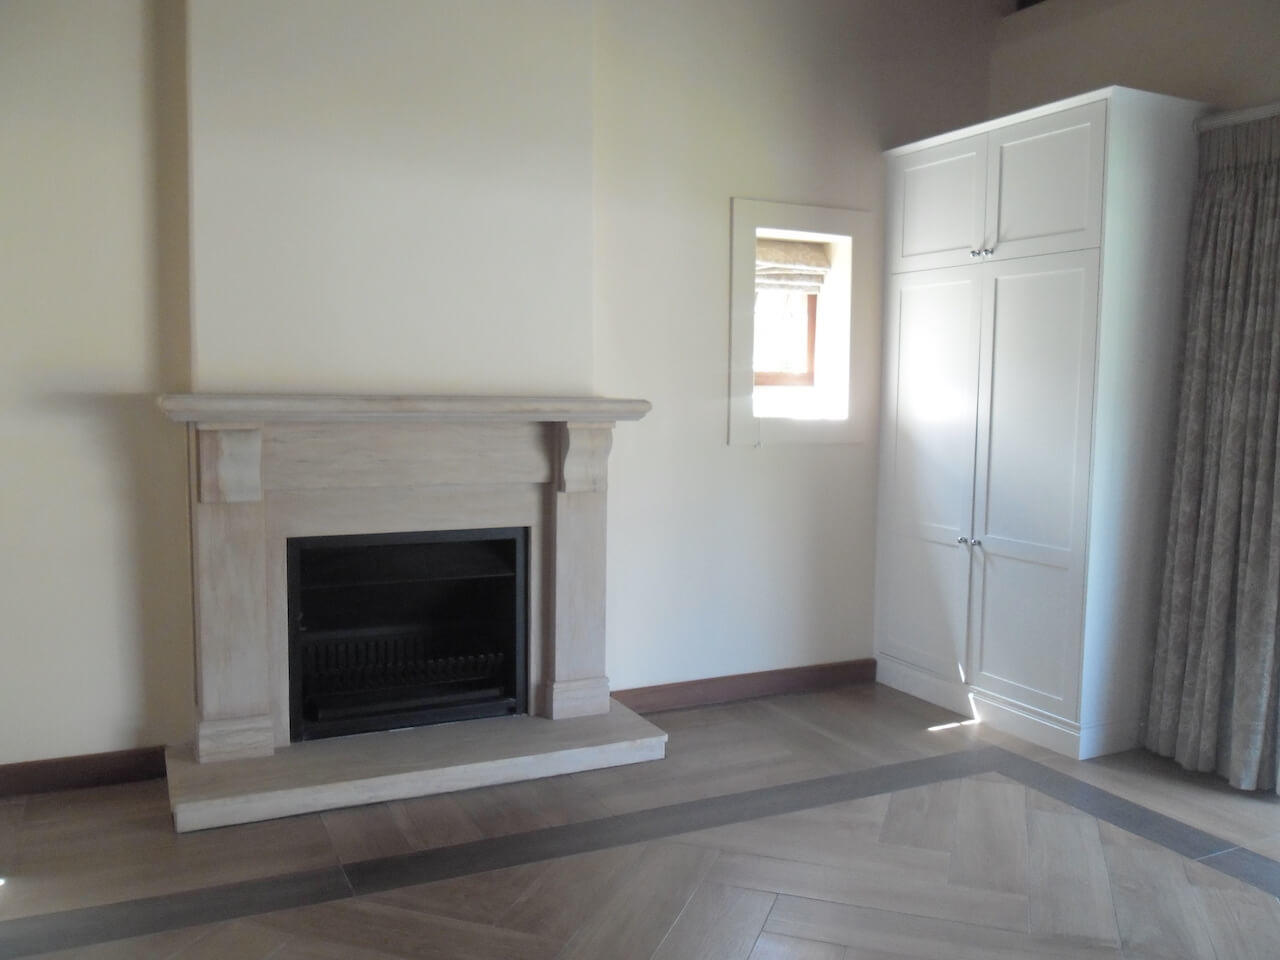 Inpatient Rooms All With Private Fireplaces. Underfloor Heating on Handcrafted Wood Look Imported Tiles